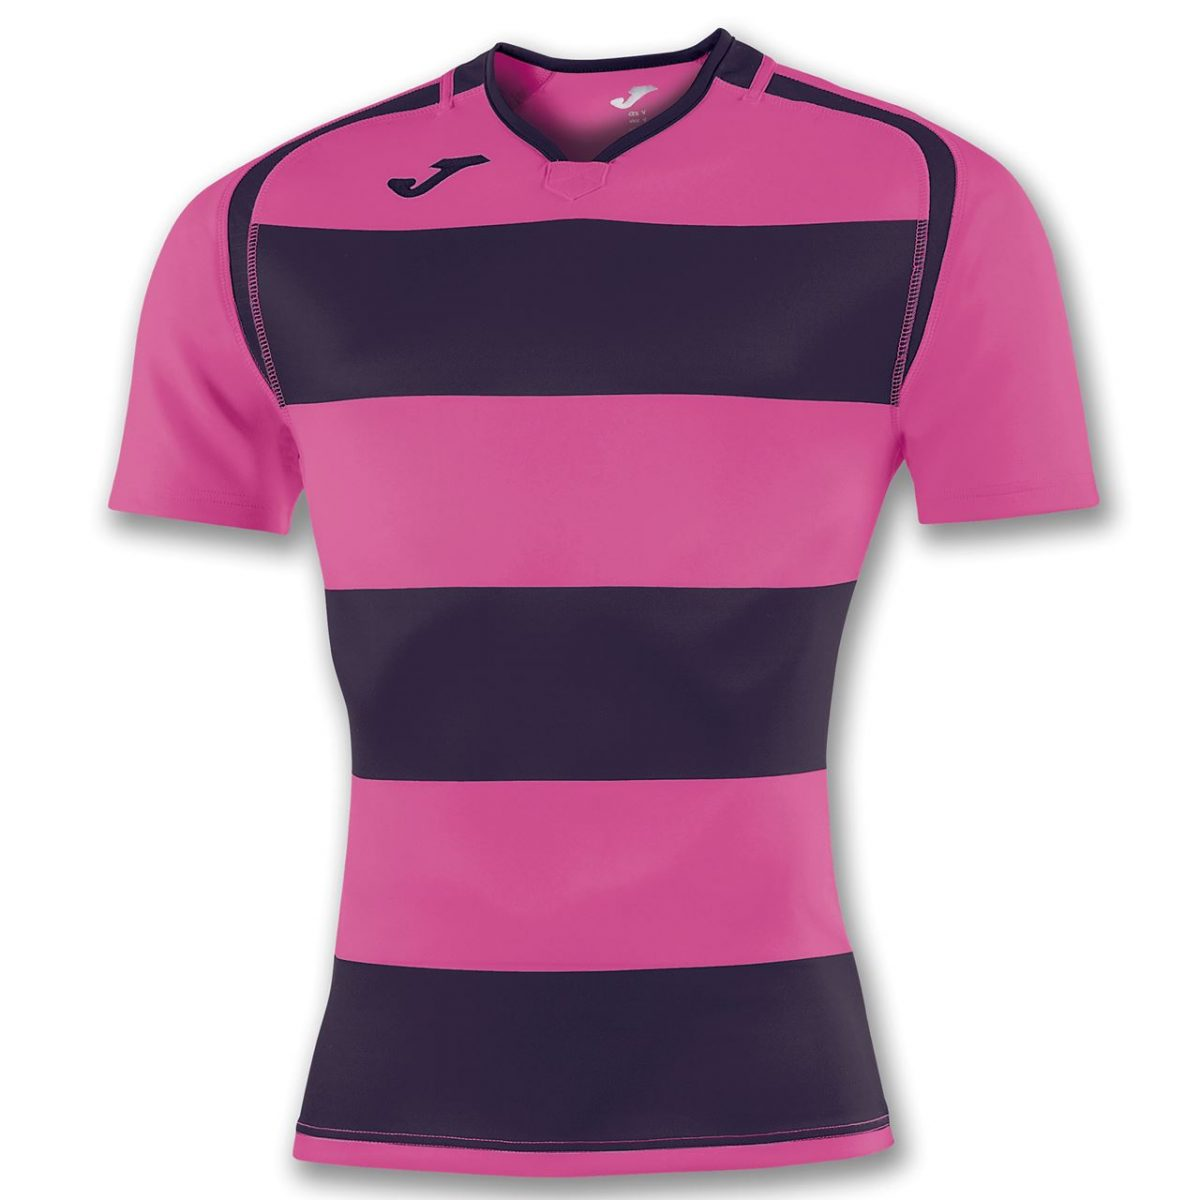 Joma Prorugby Adult Rugby Shirt 100735